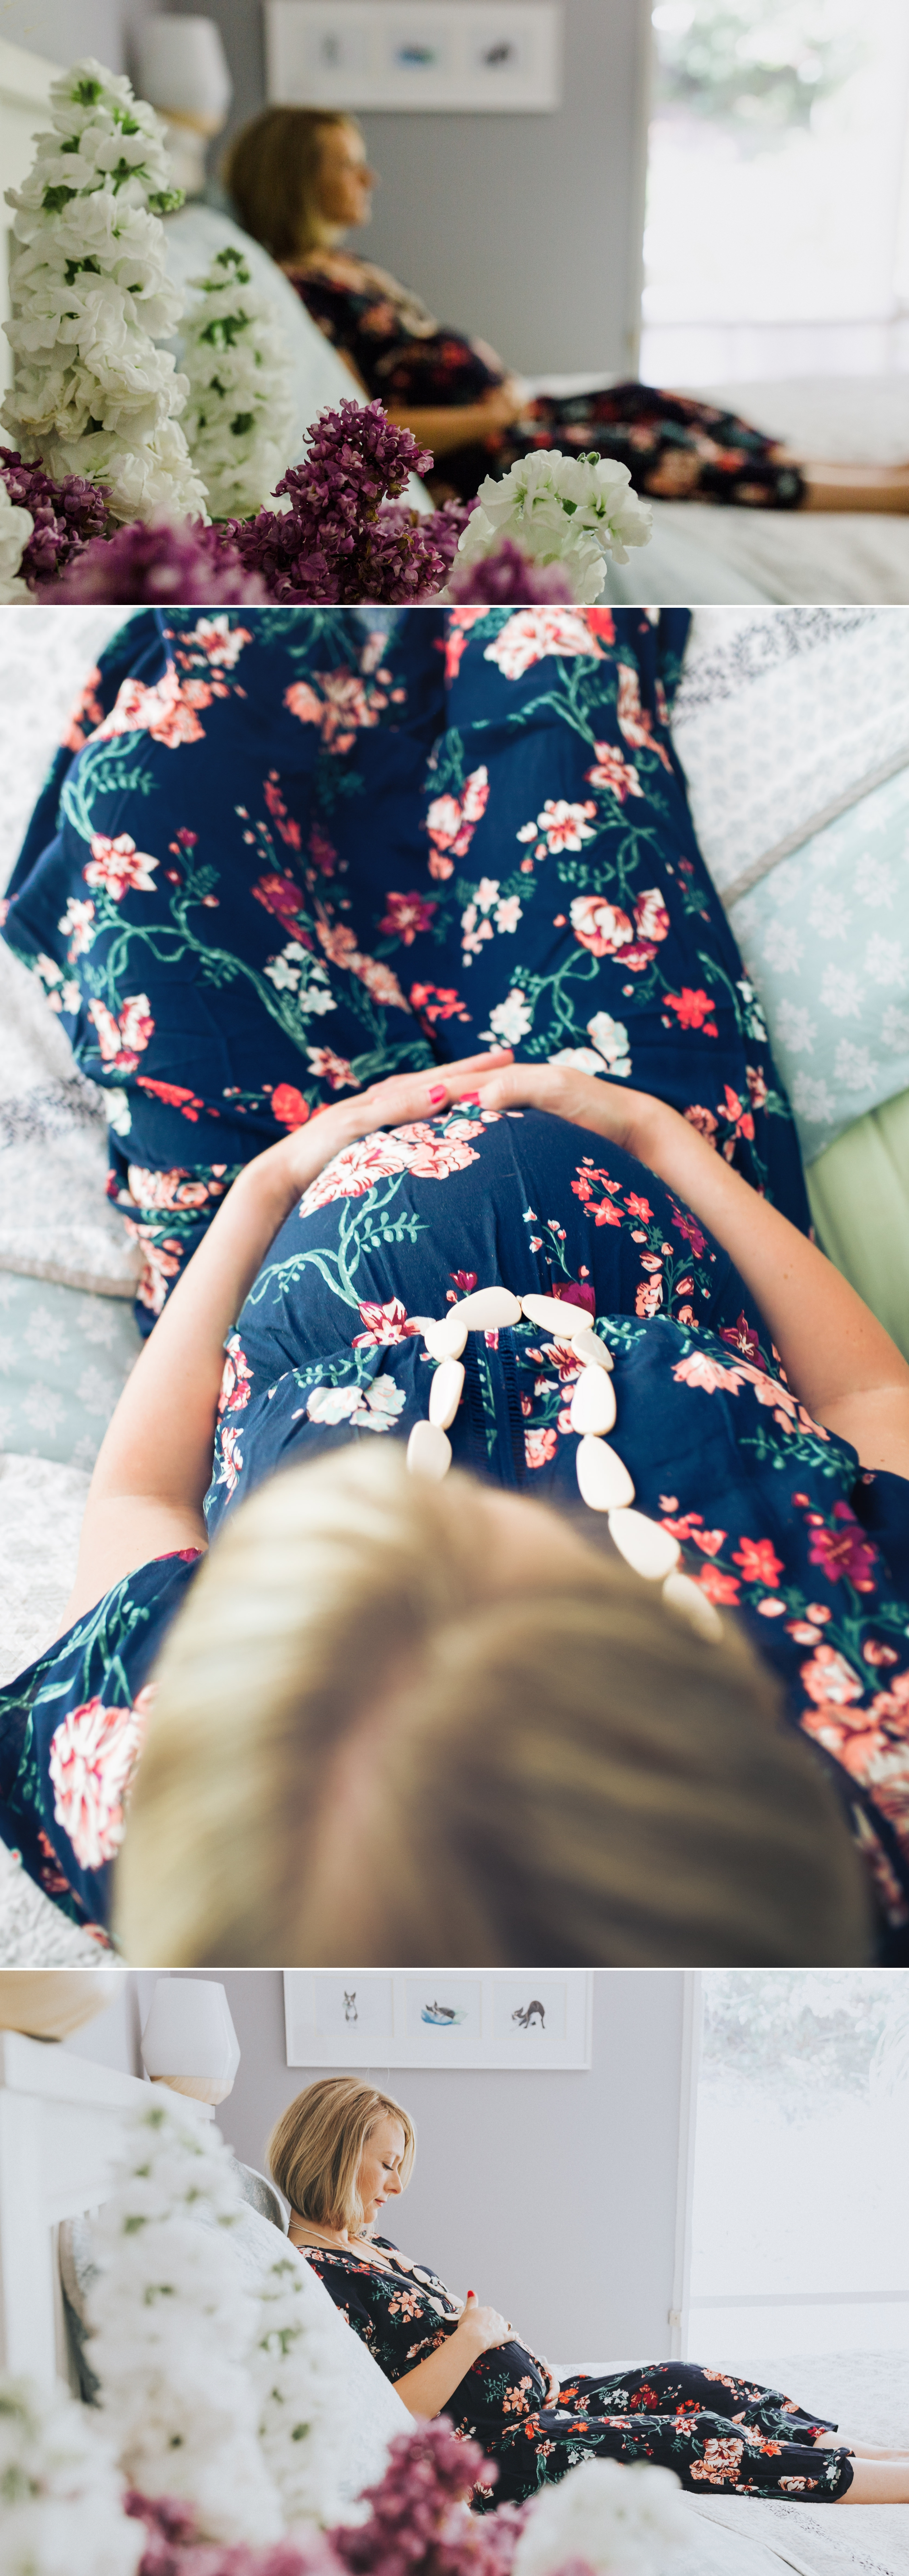 intimate in-home maternity session